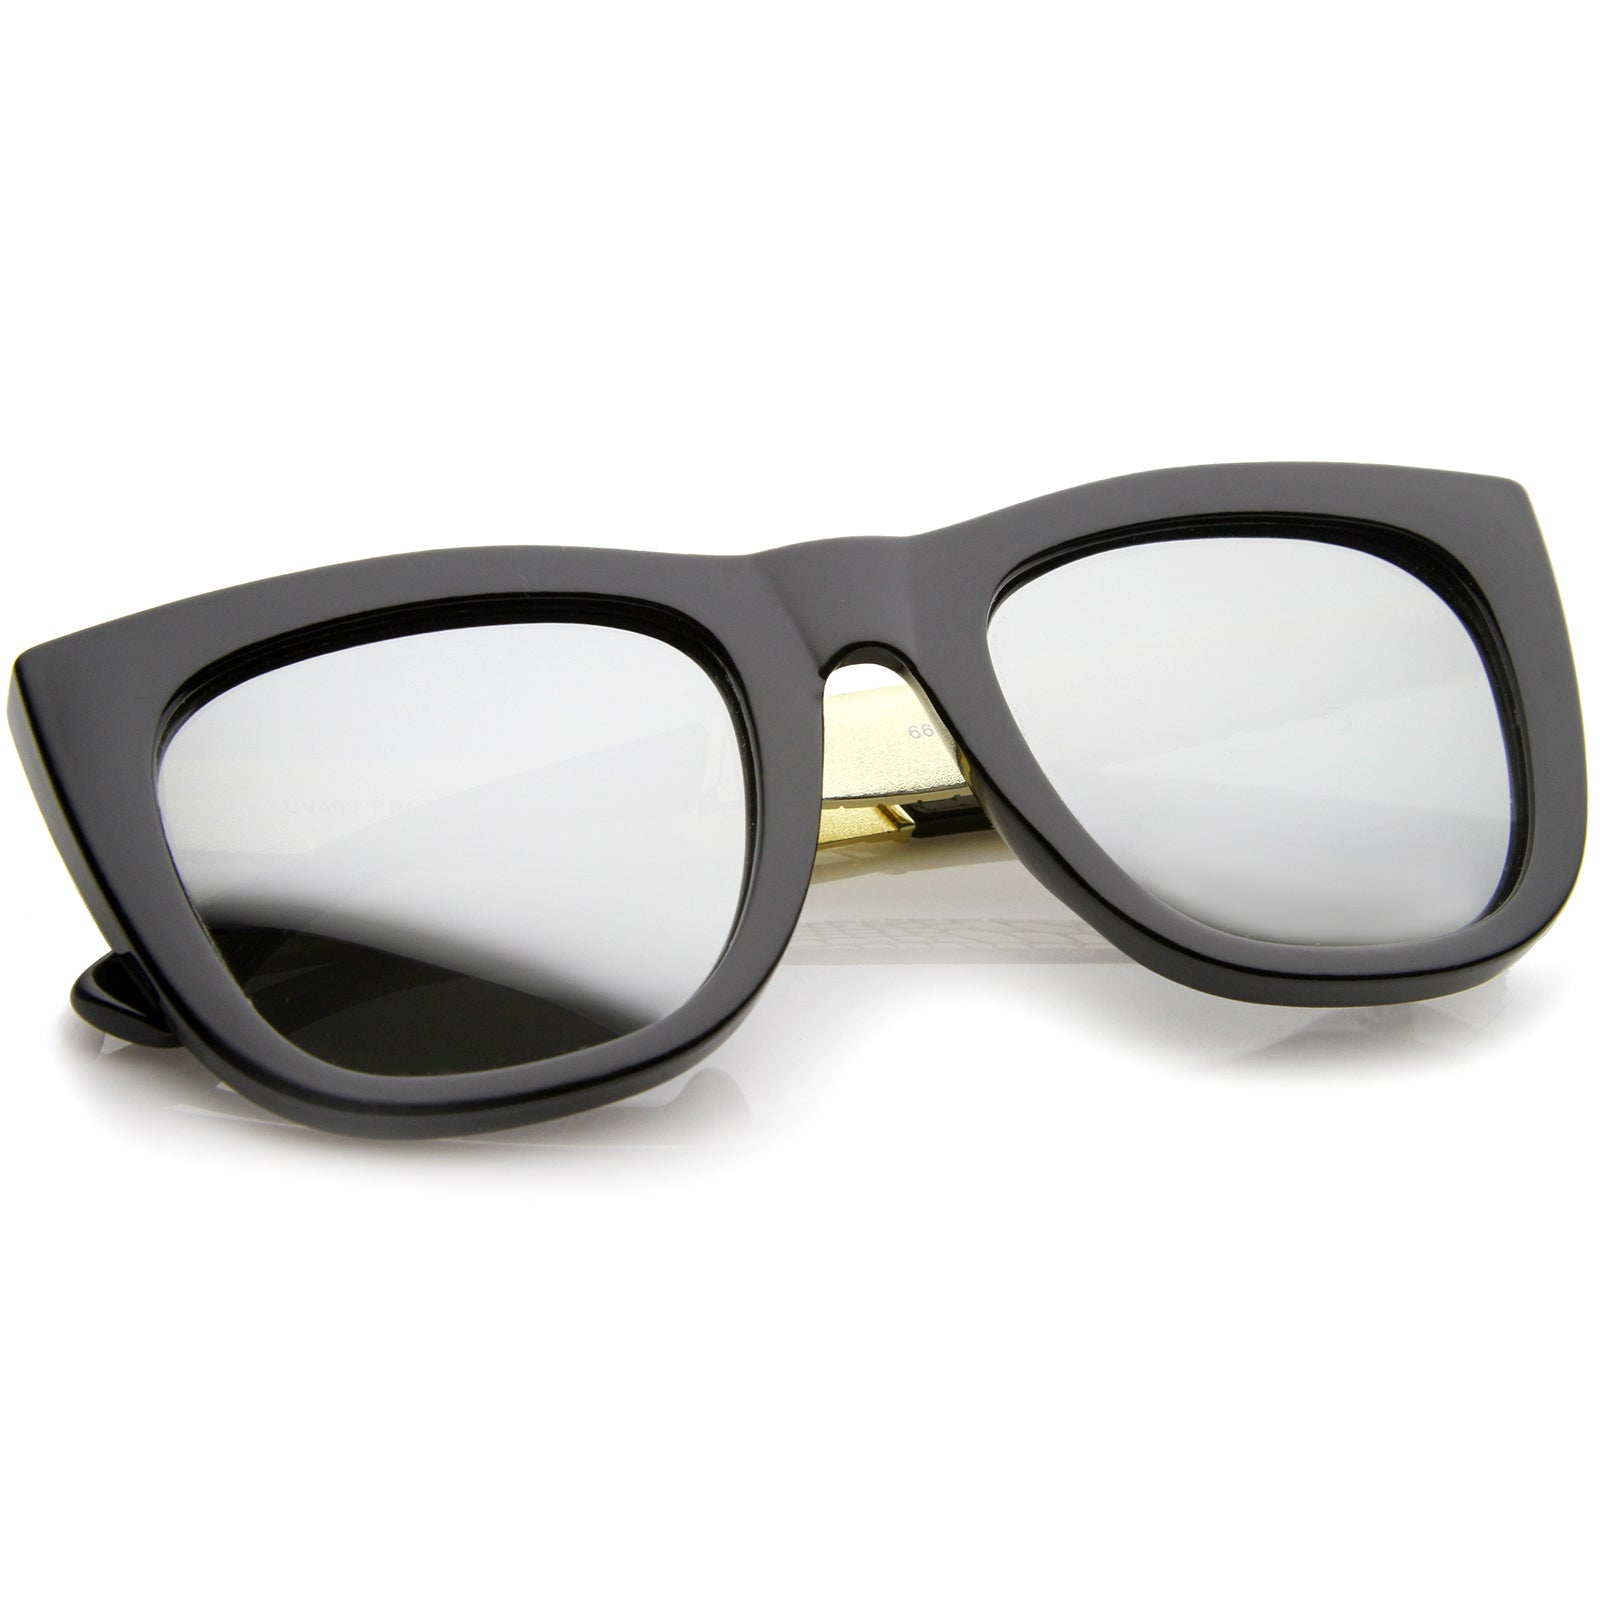 High Fashion Alligator Metal Temple Mirrored Lens Flat Top Sunglasses - sunglass.la - 4